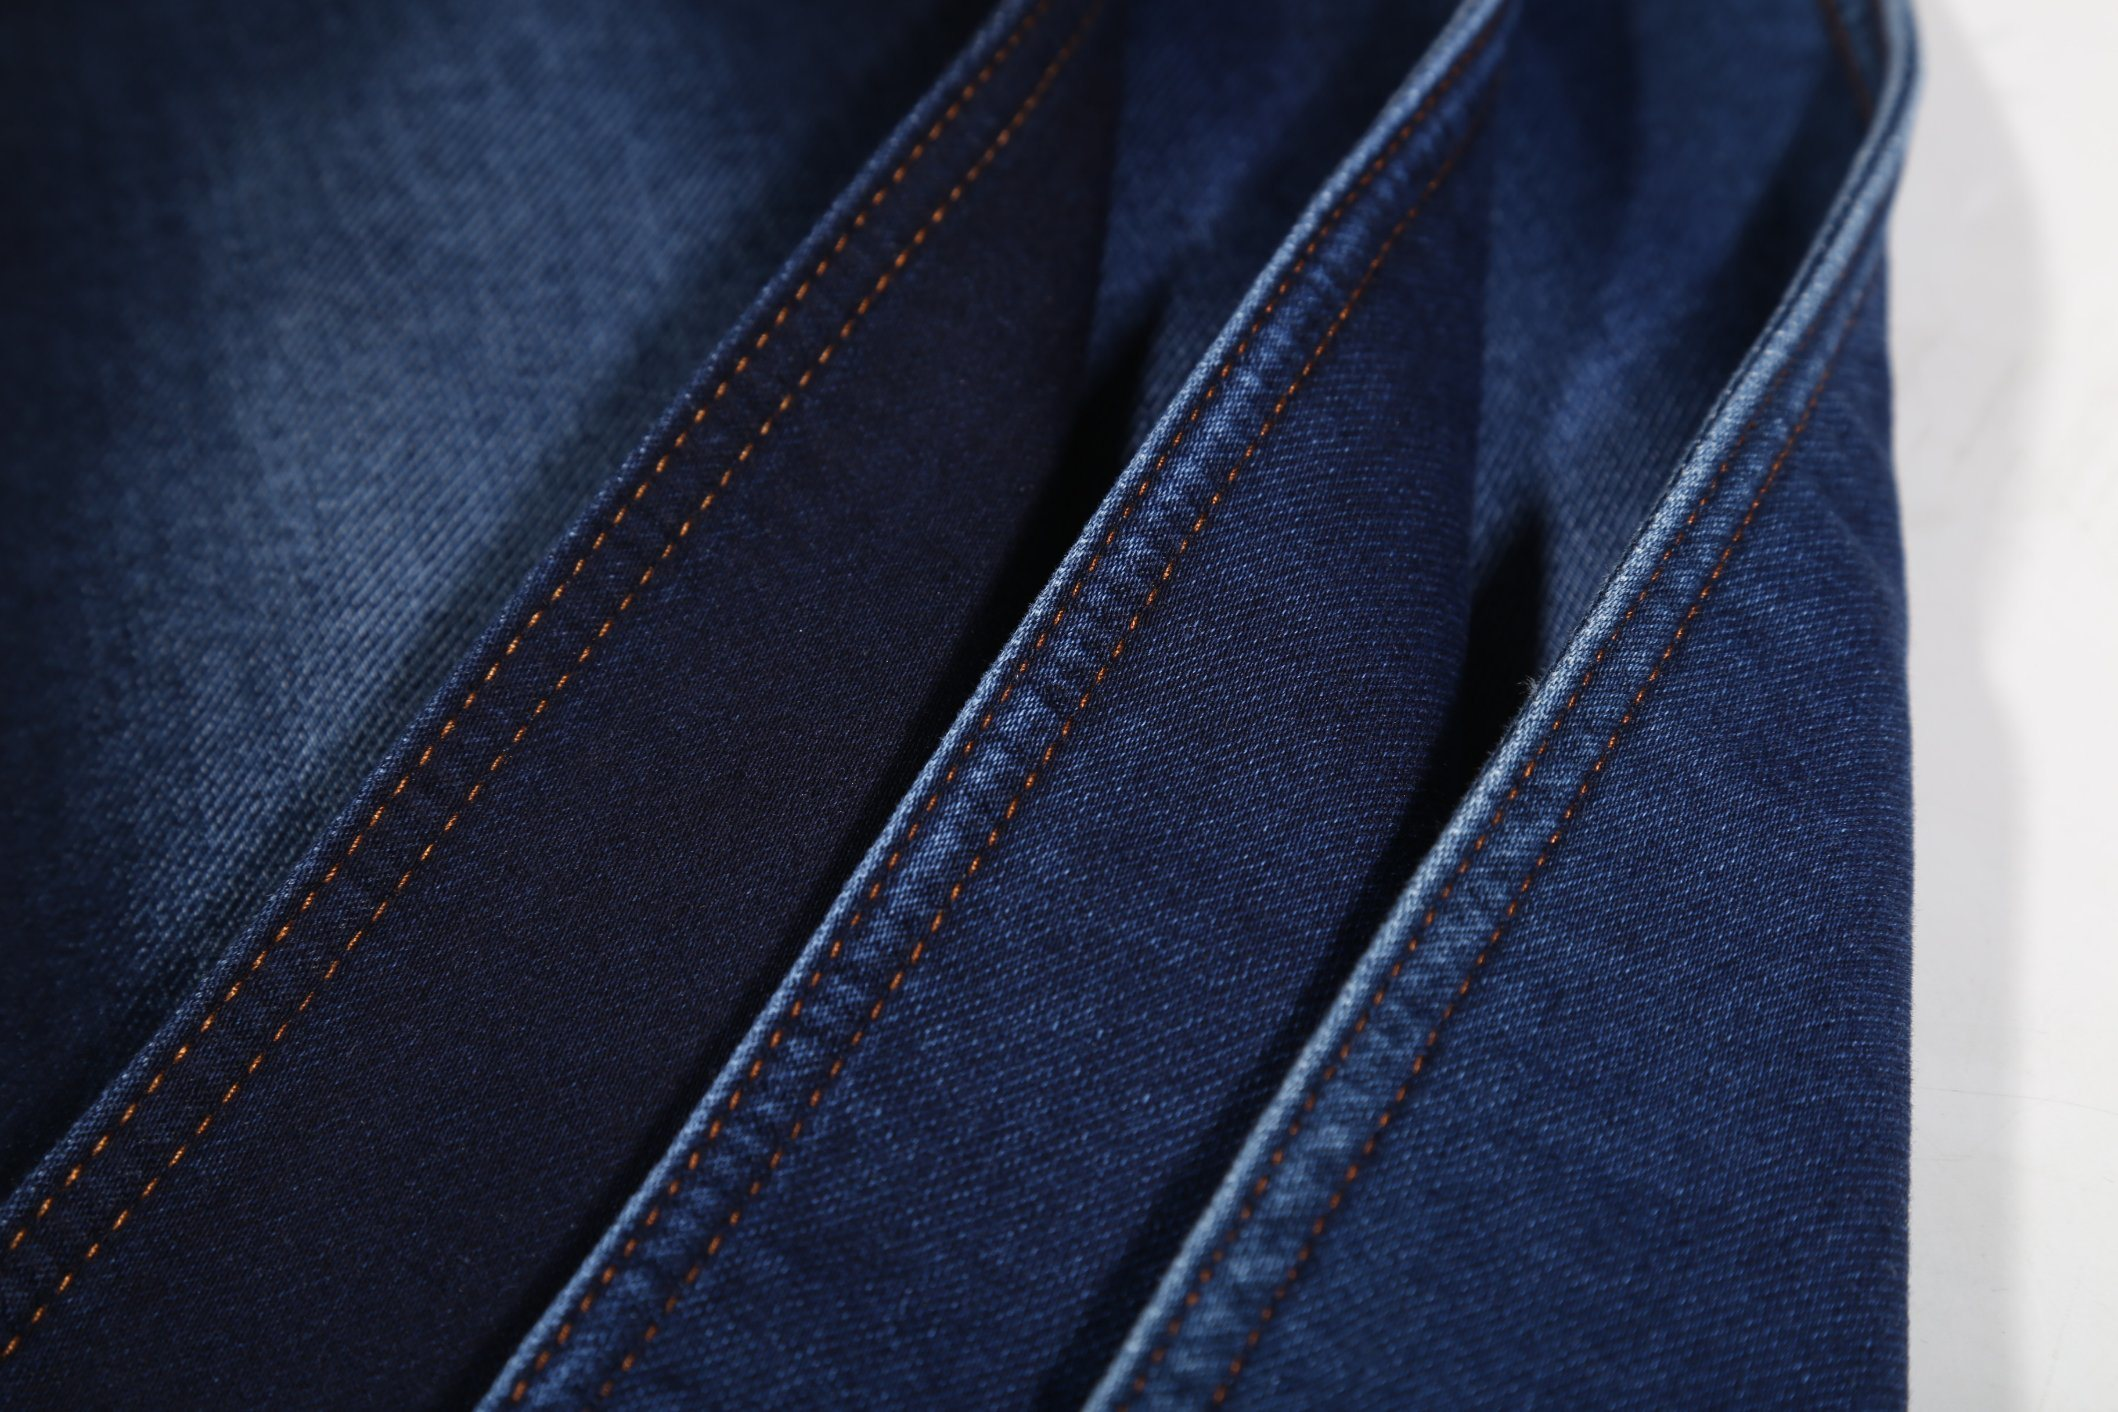 Indigo Color, Super Soft Wearing Terry Denim fabric